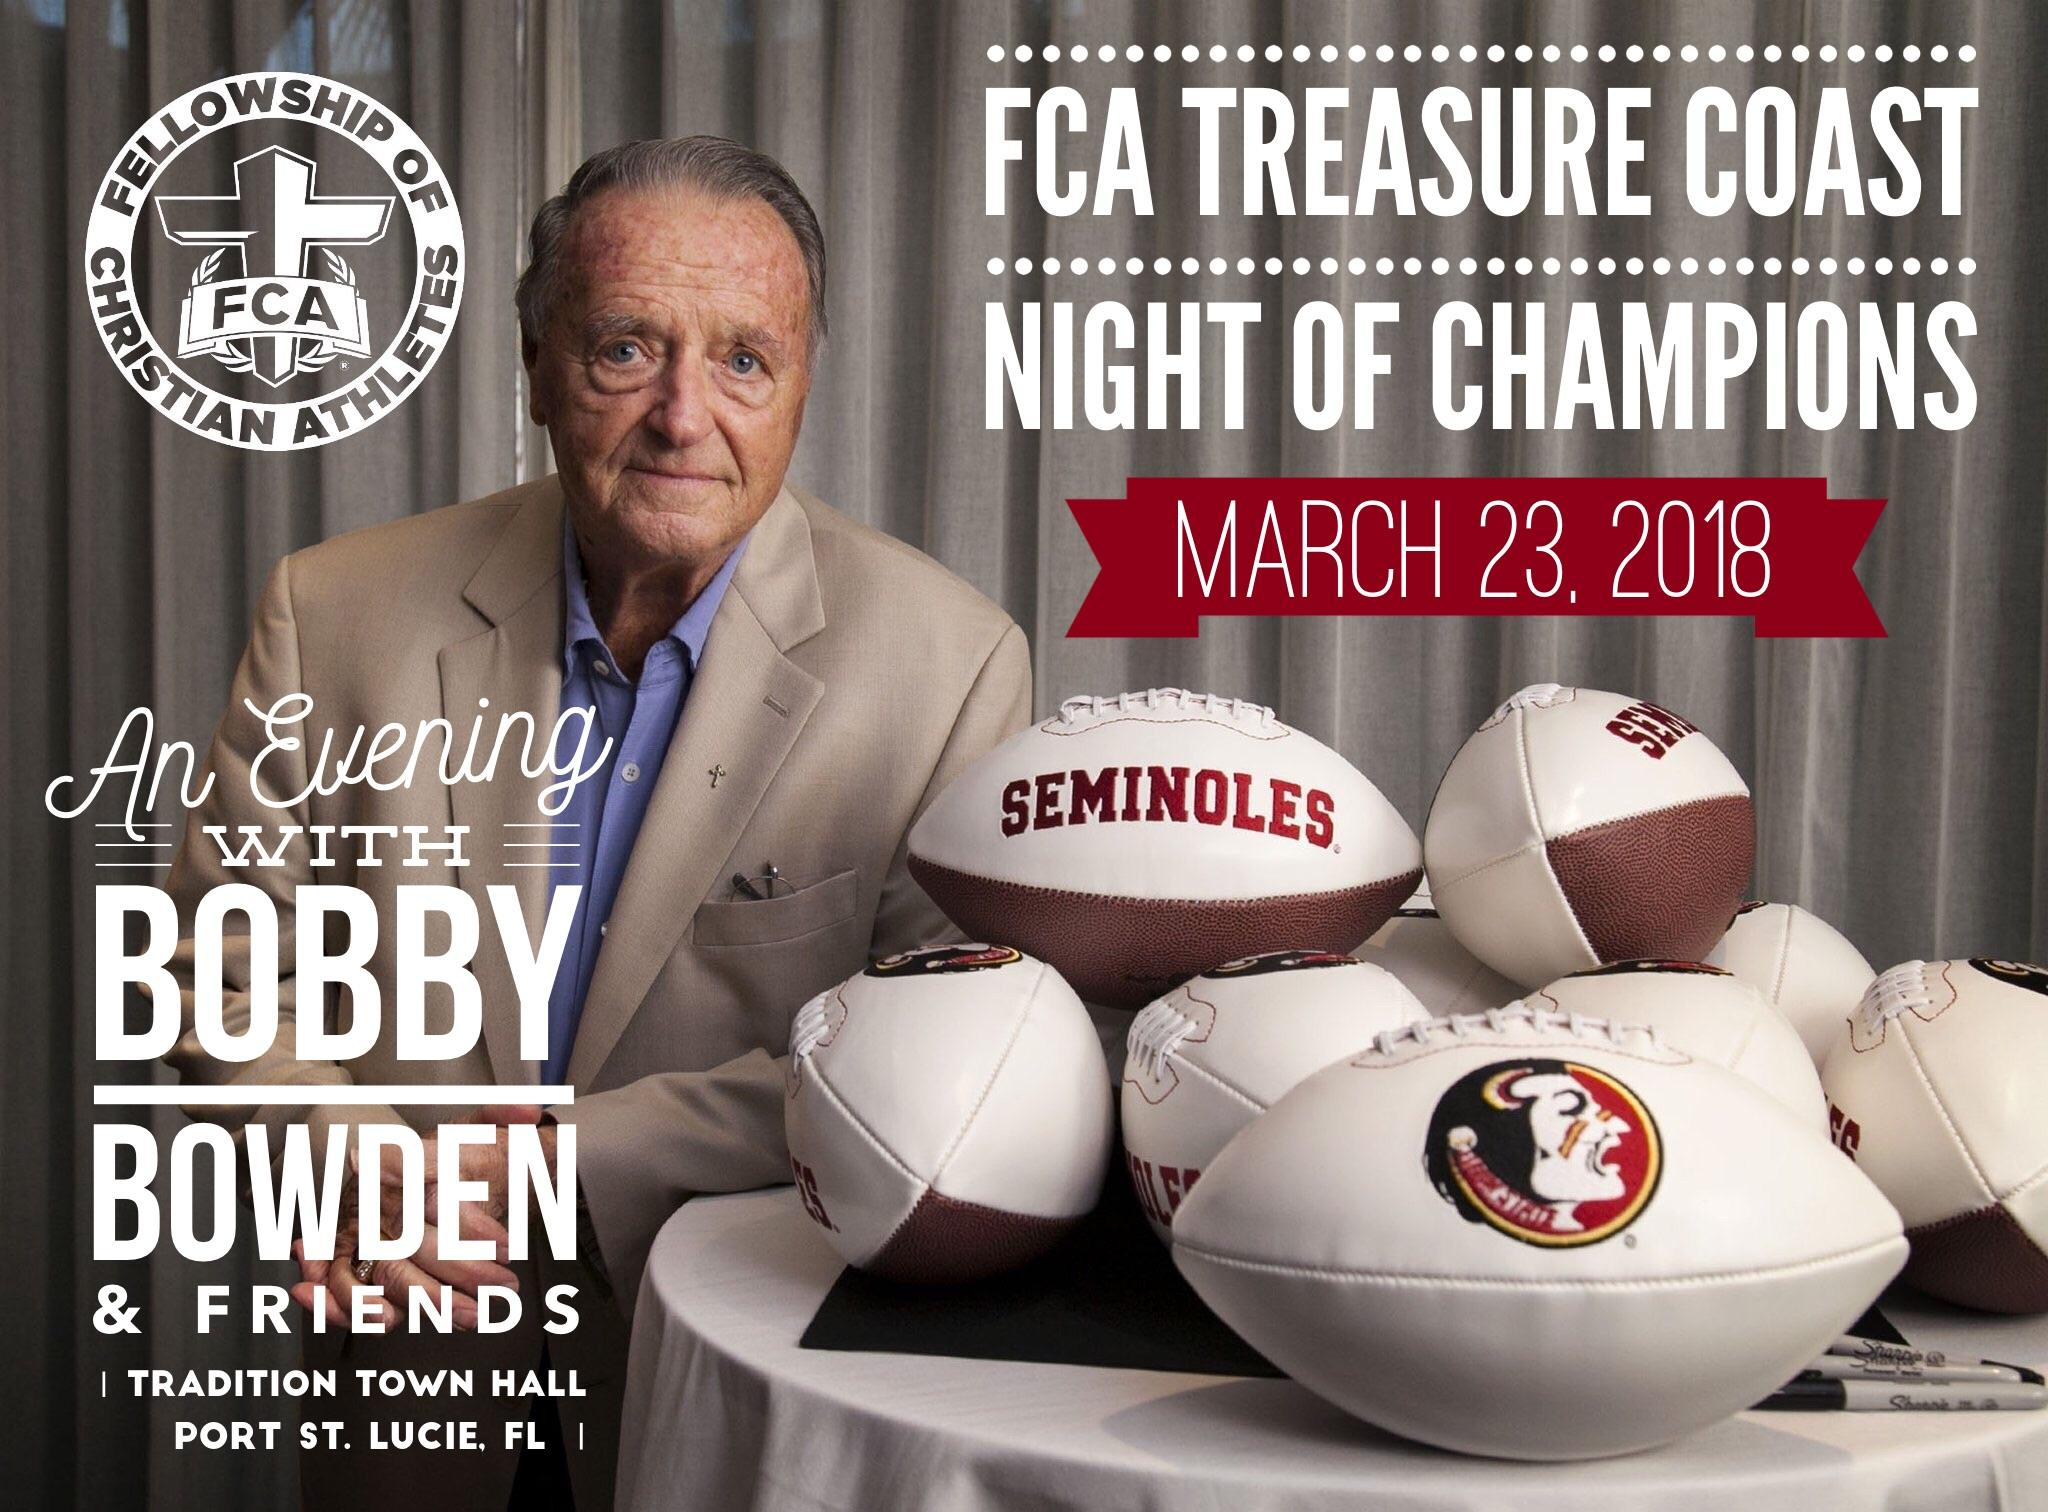 Sponsorship Opportunities & Ticket Info available at www.TreasureCoastFCA.org